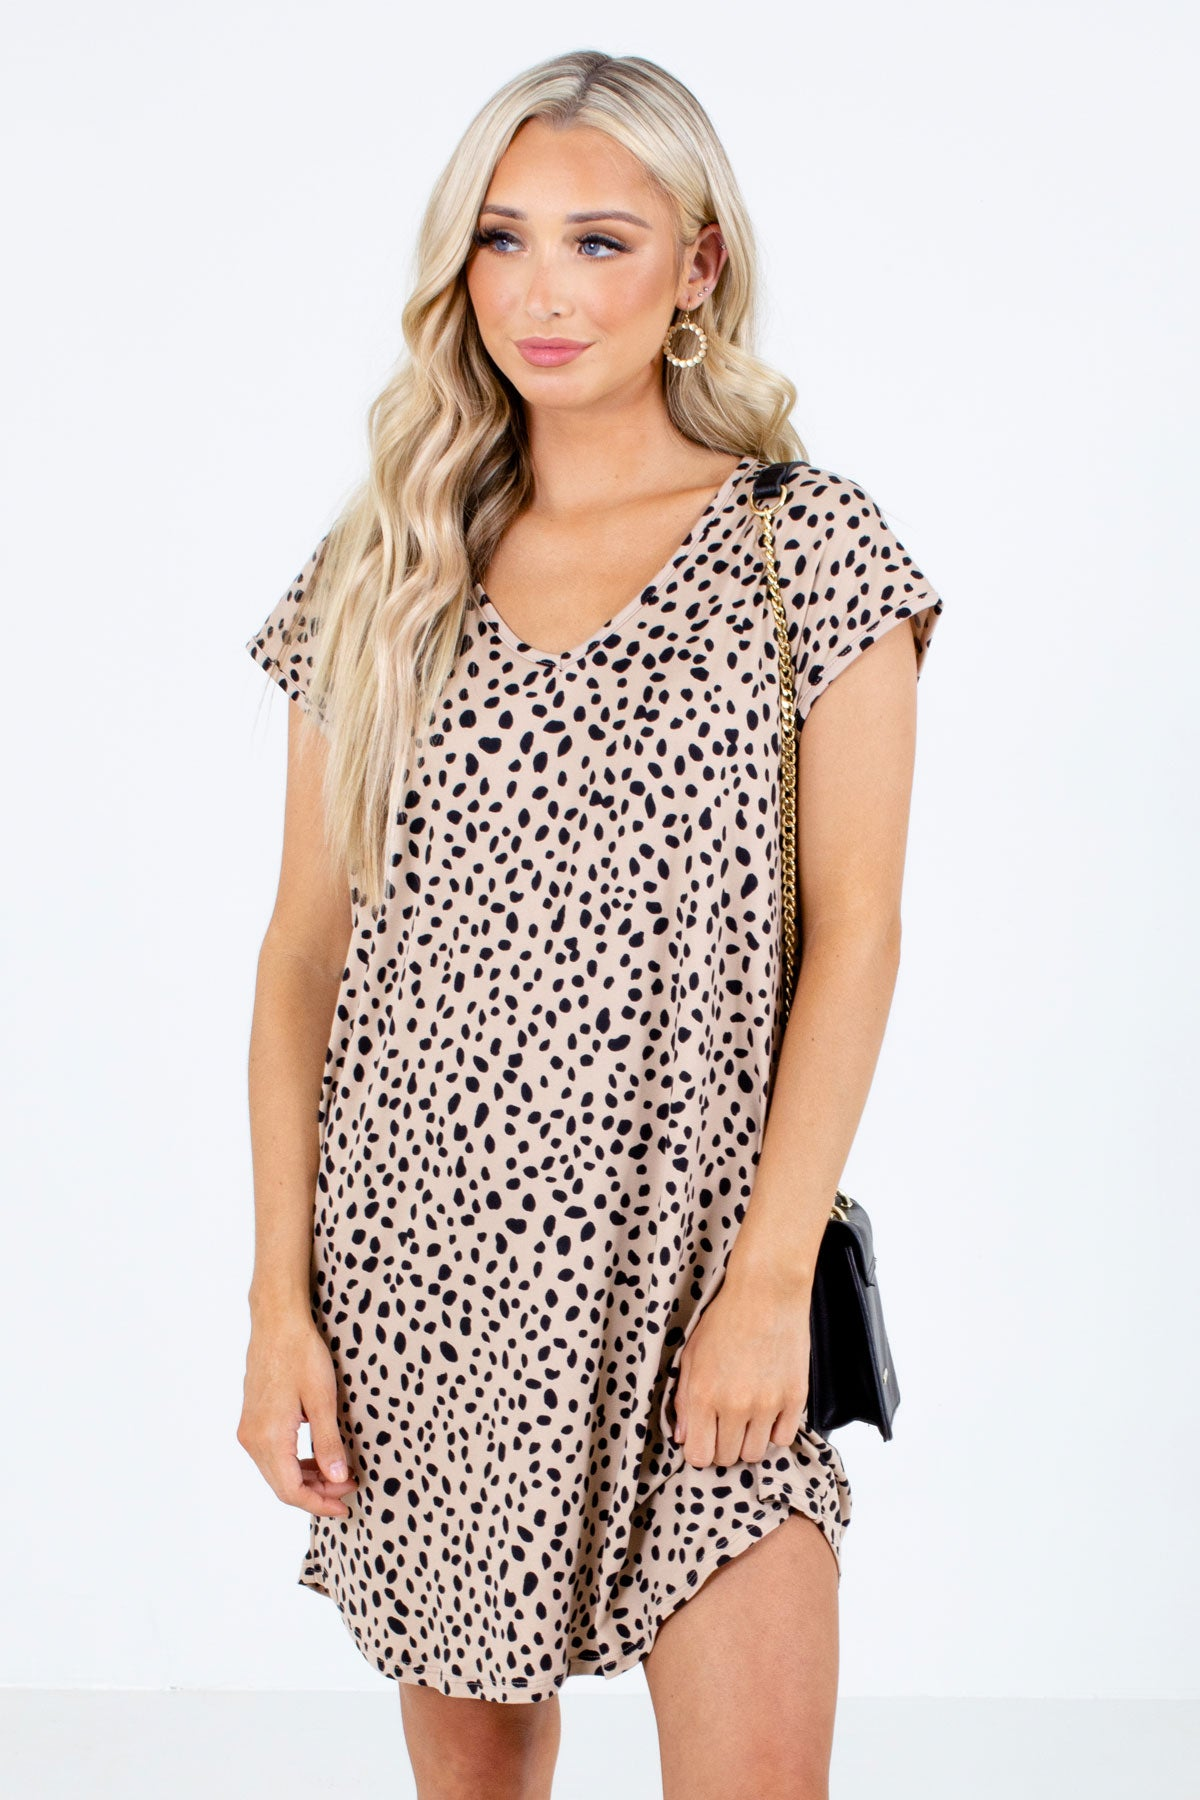 Brown and Black Abstract Polka Dot Patterned Boutique Mini Dresses for Women